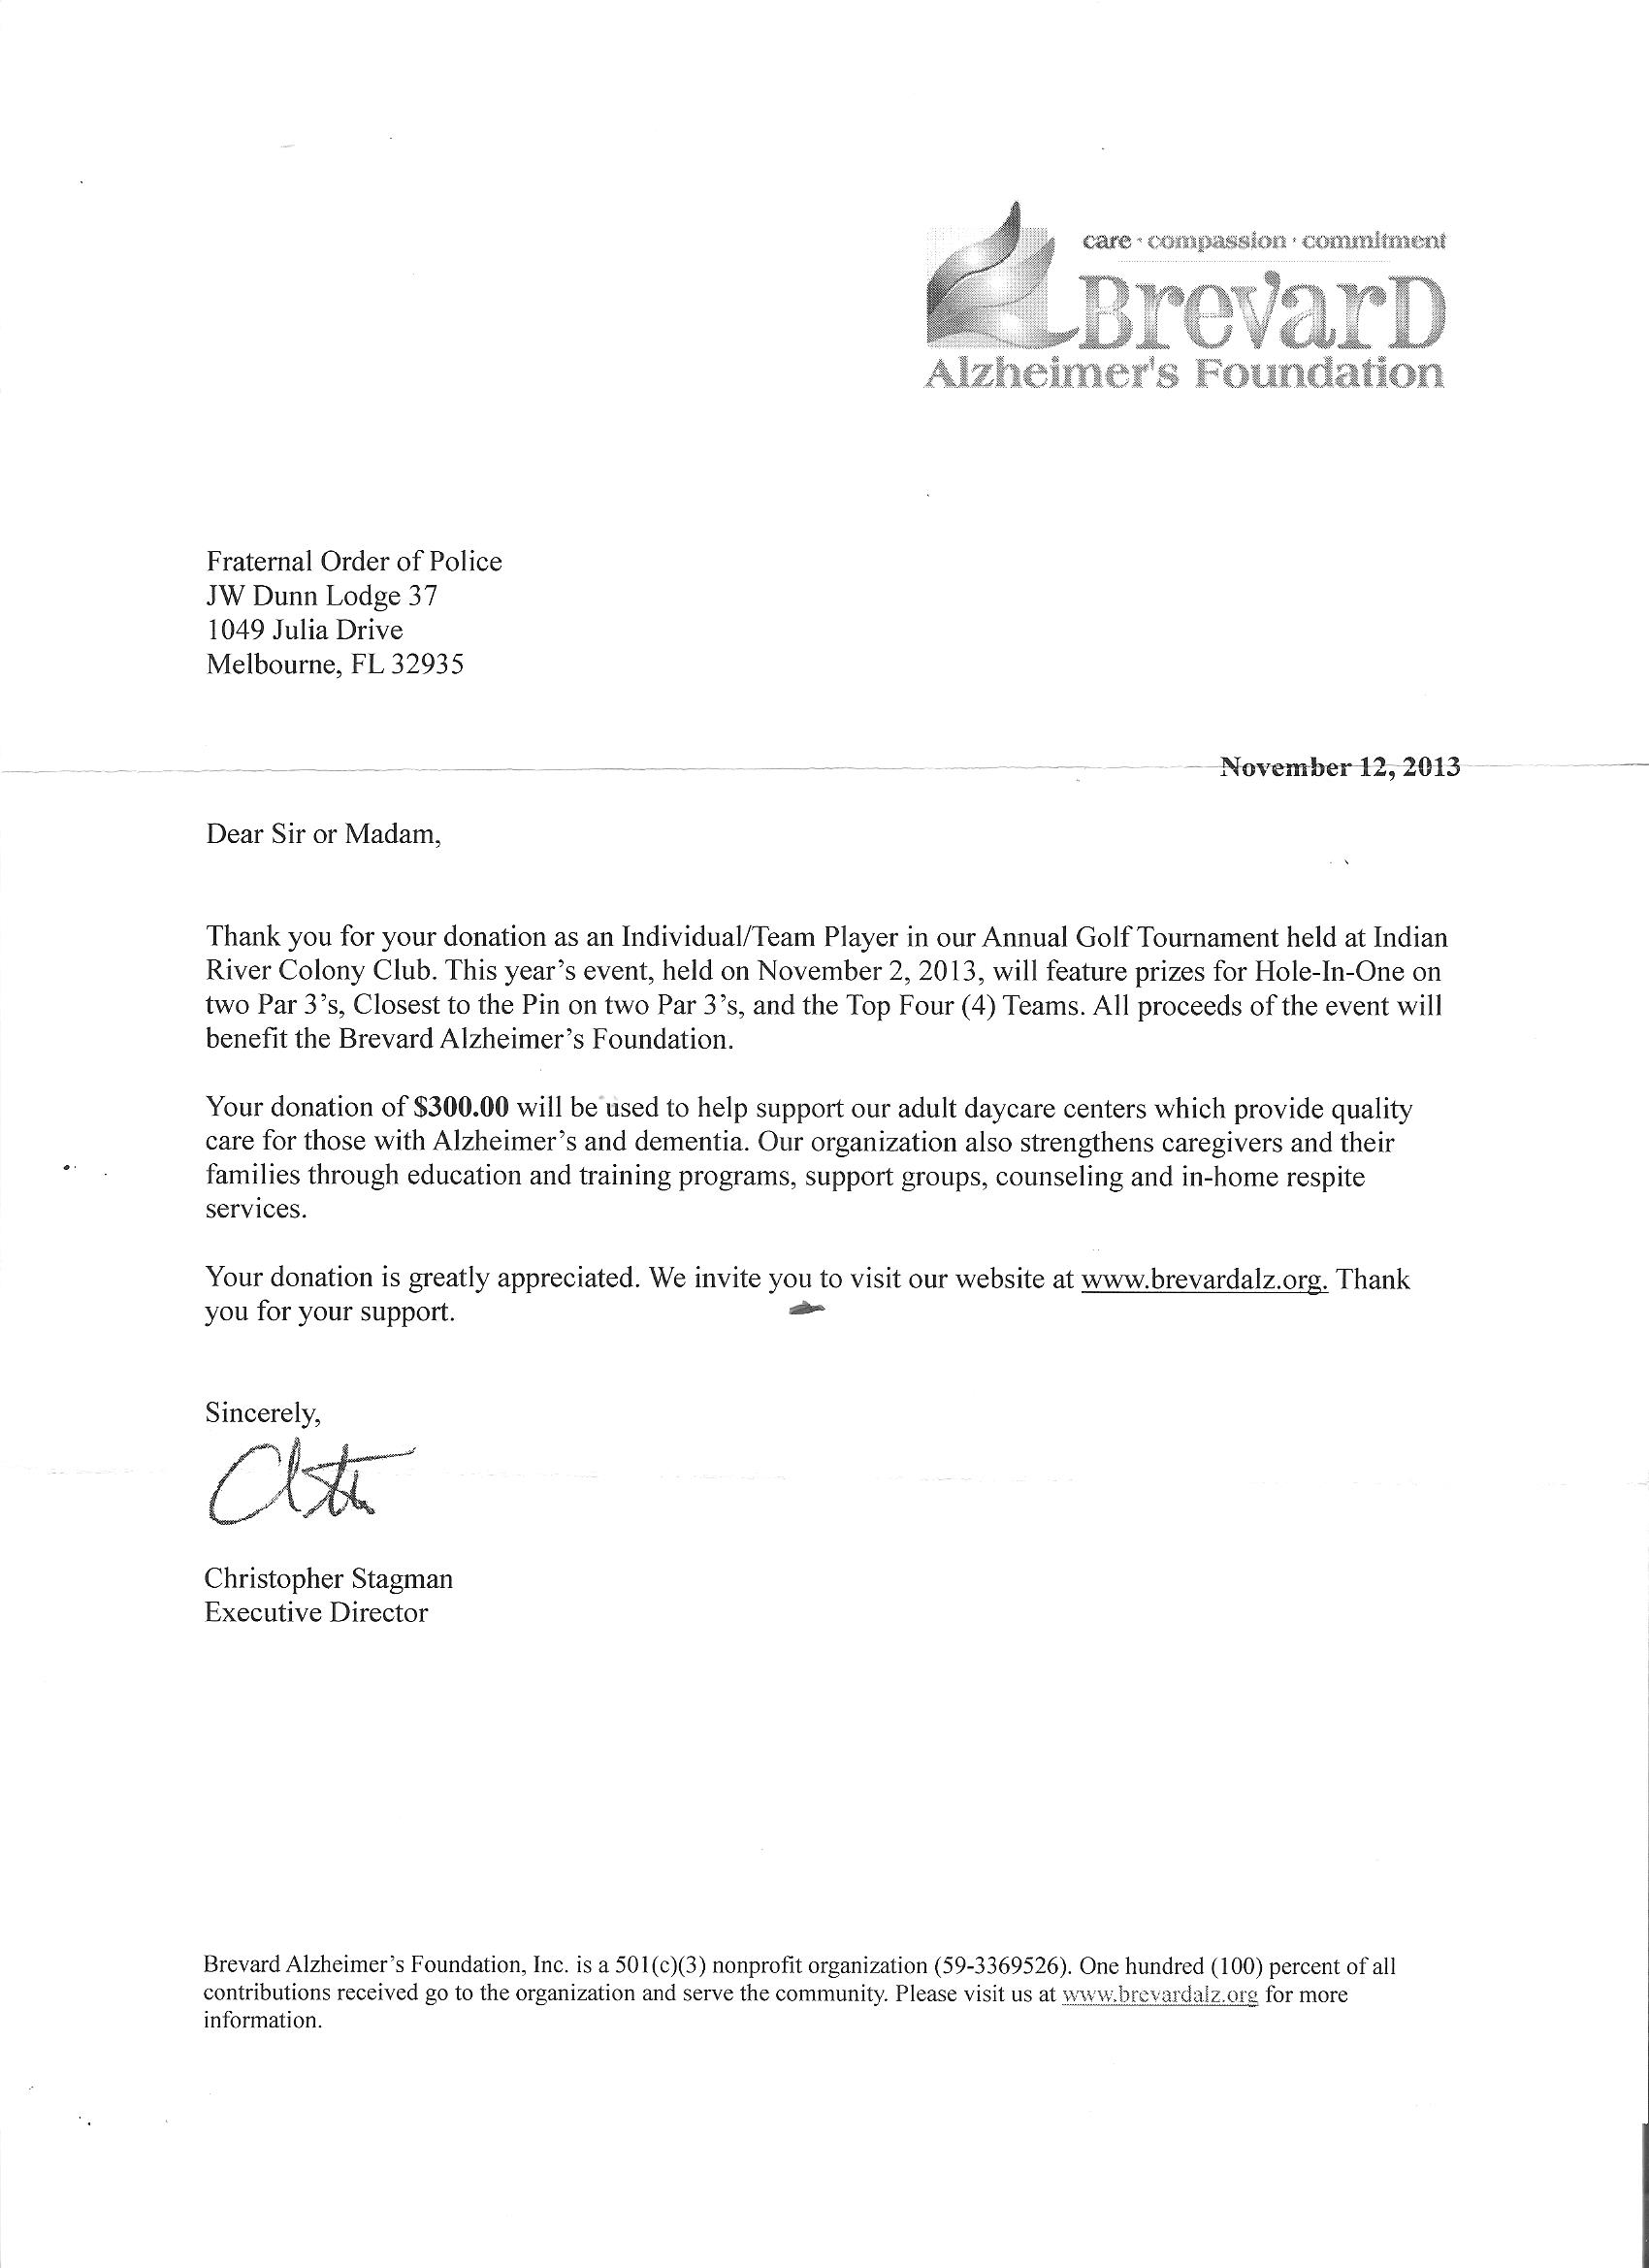 Brevard County – Sponsorship Thank You Letter